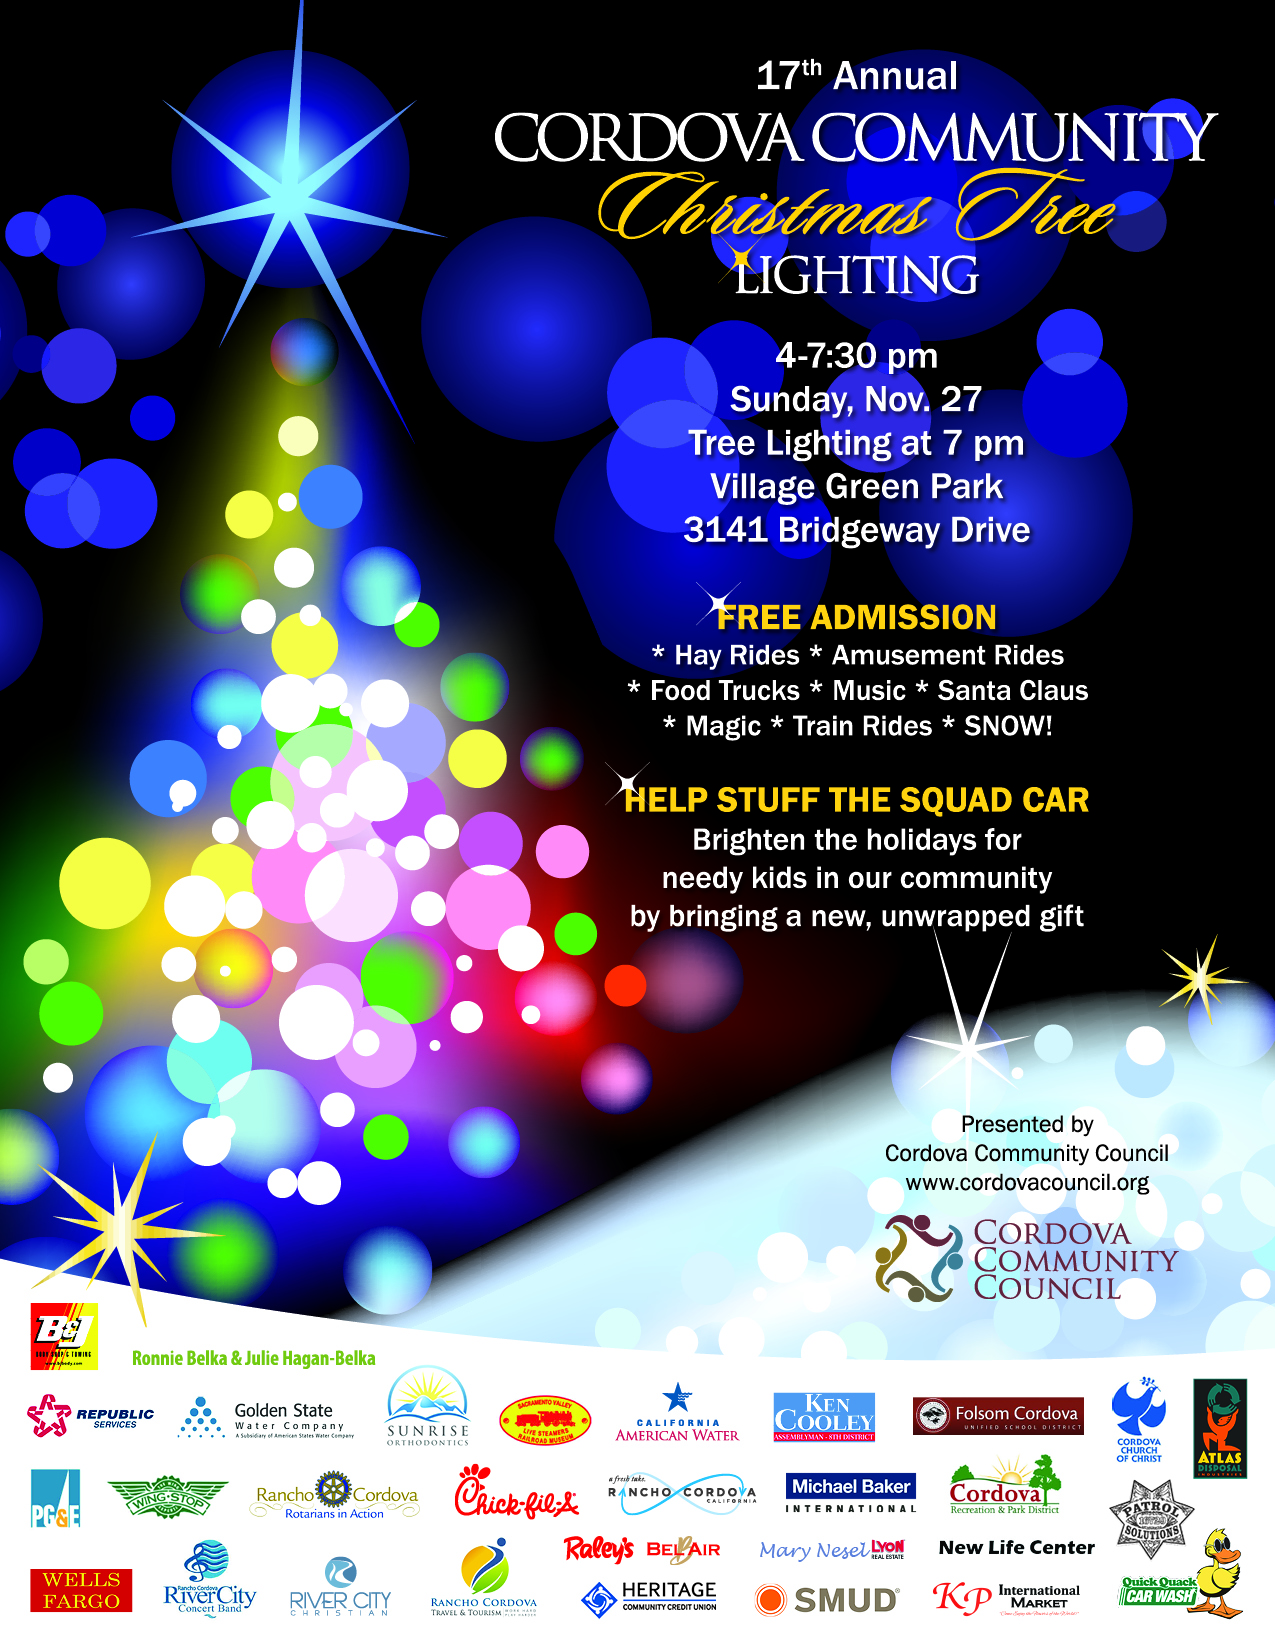 Rancho Cordova Christmas Tree Lighting 2020 17th Annual Cordova Community Christmas Tree Lighting | Events